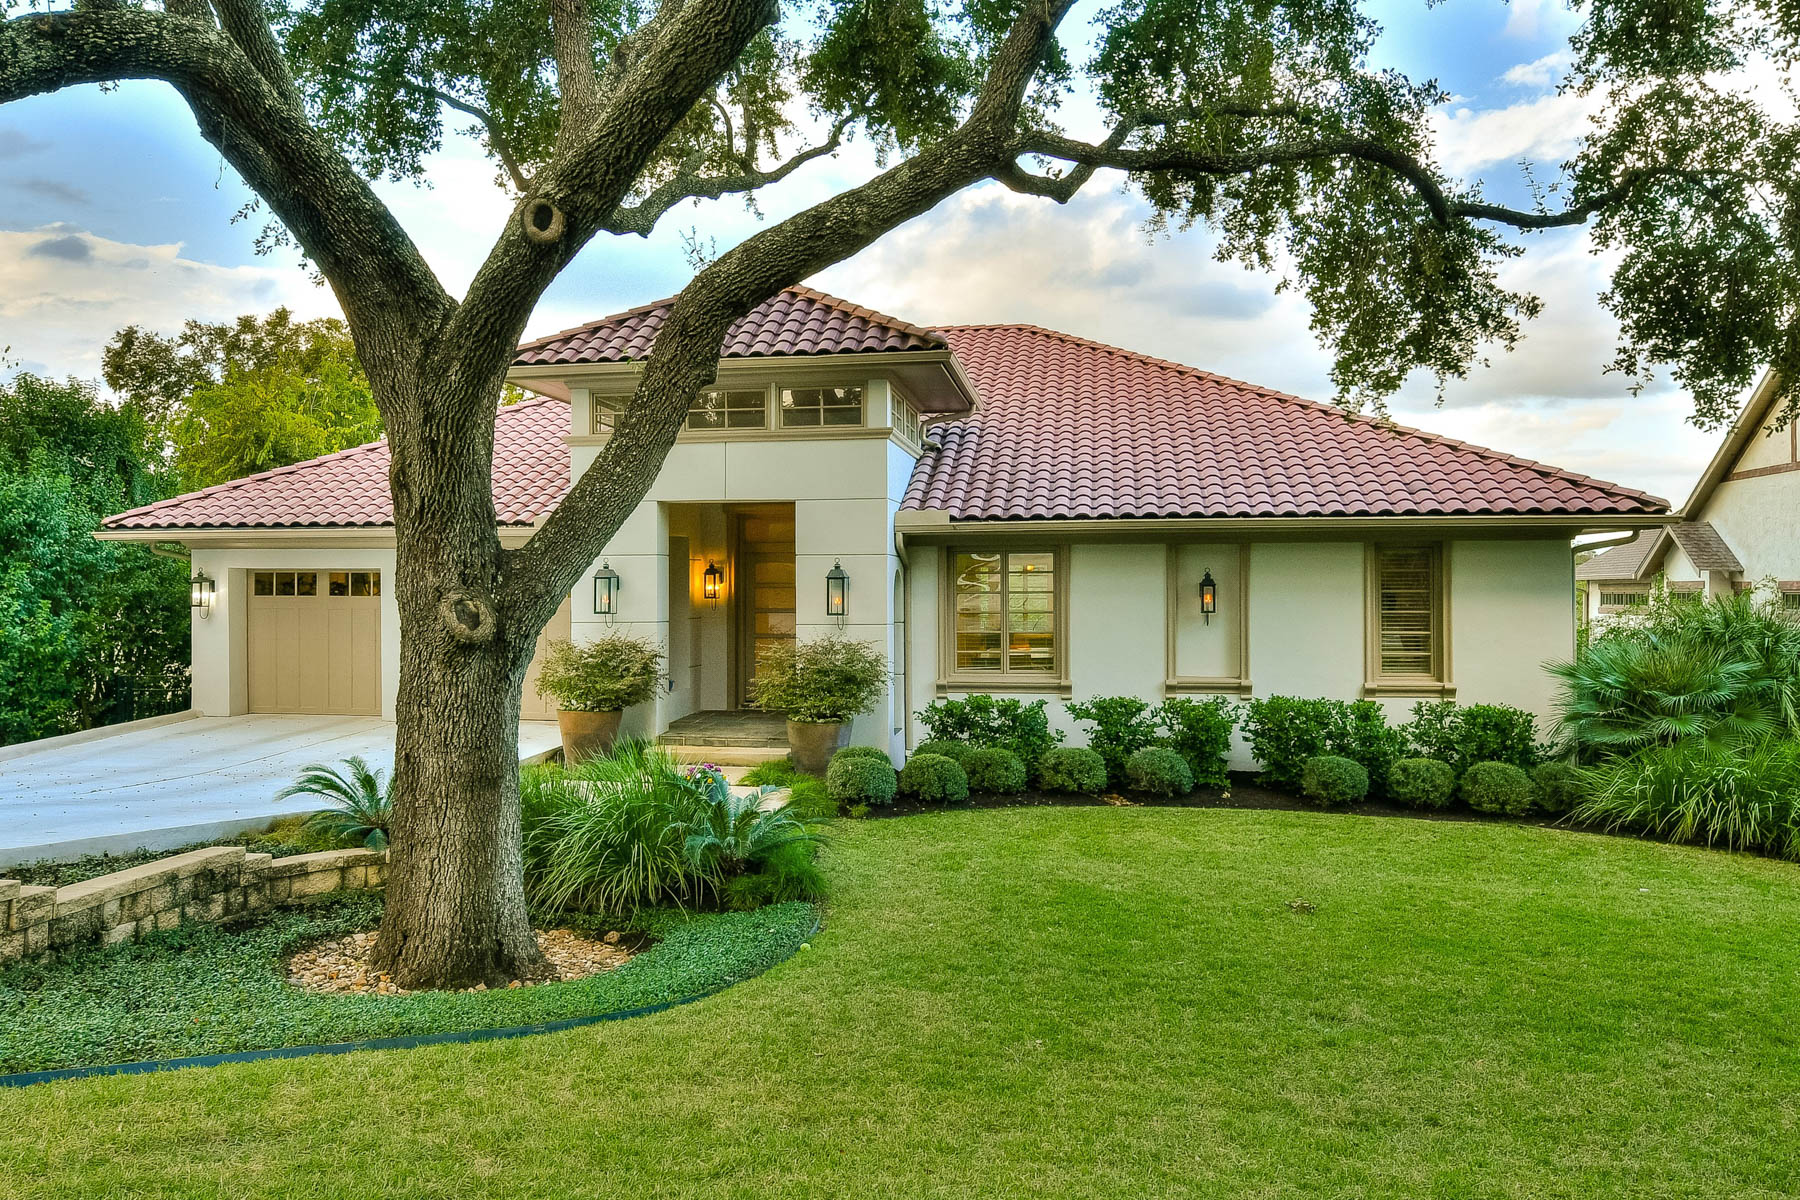 Single Family Home for Sale at Meticulously Cared for Home in Terrell Hills 723 Elizabeth Rd San Antonio, Texas 78209 United States